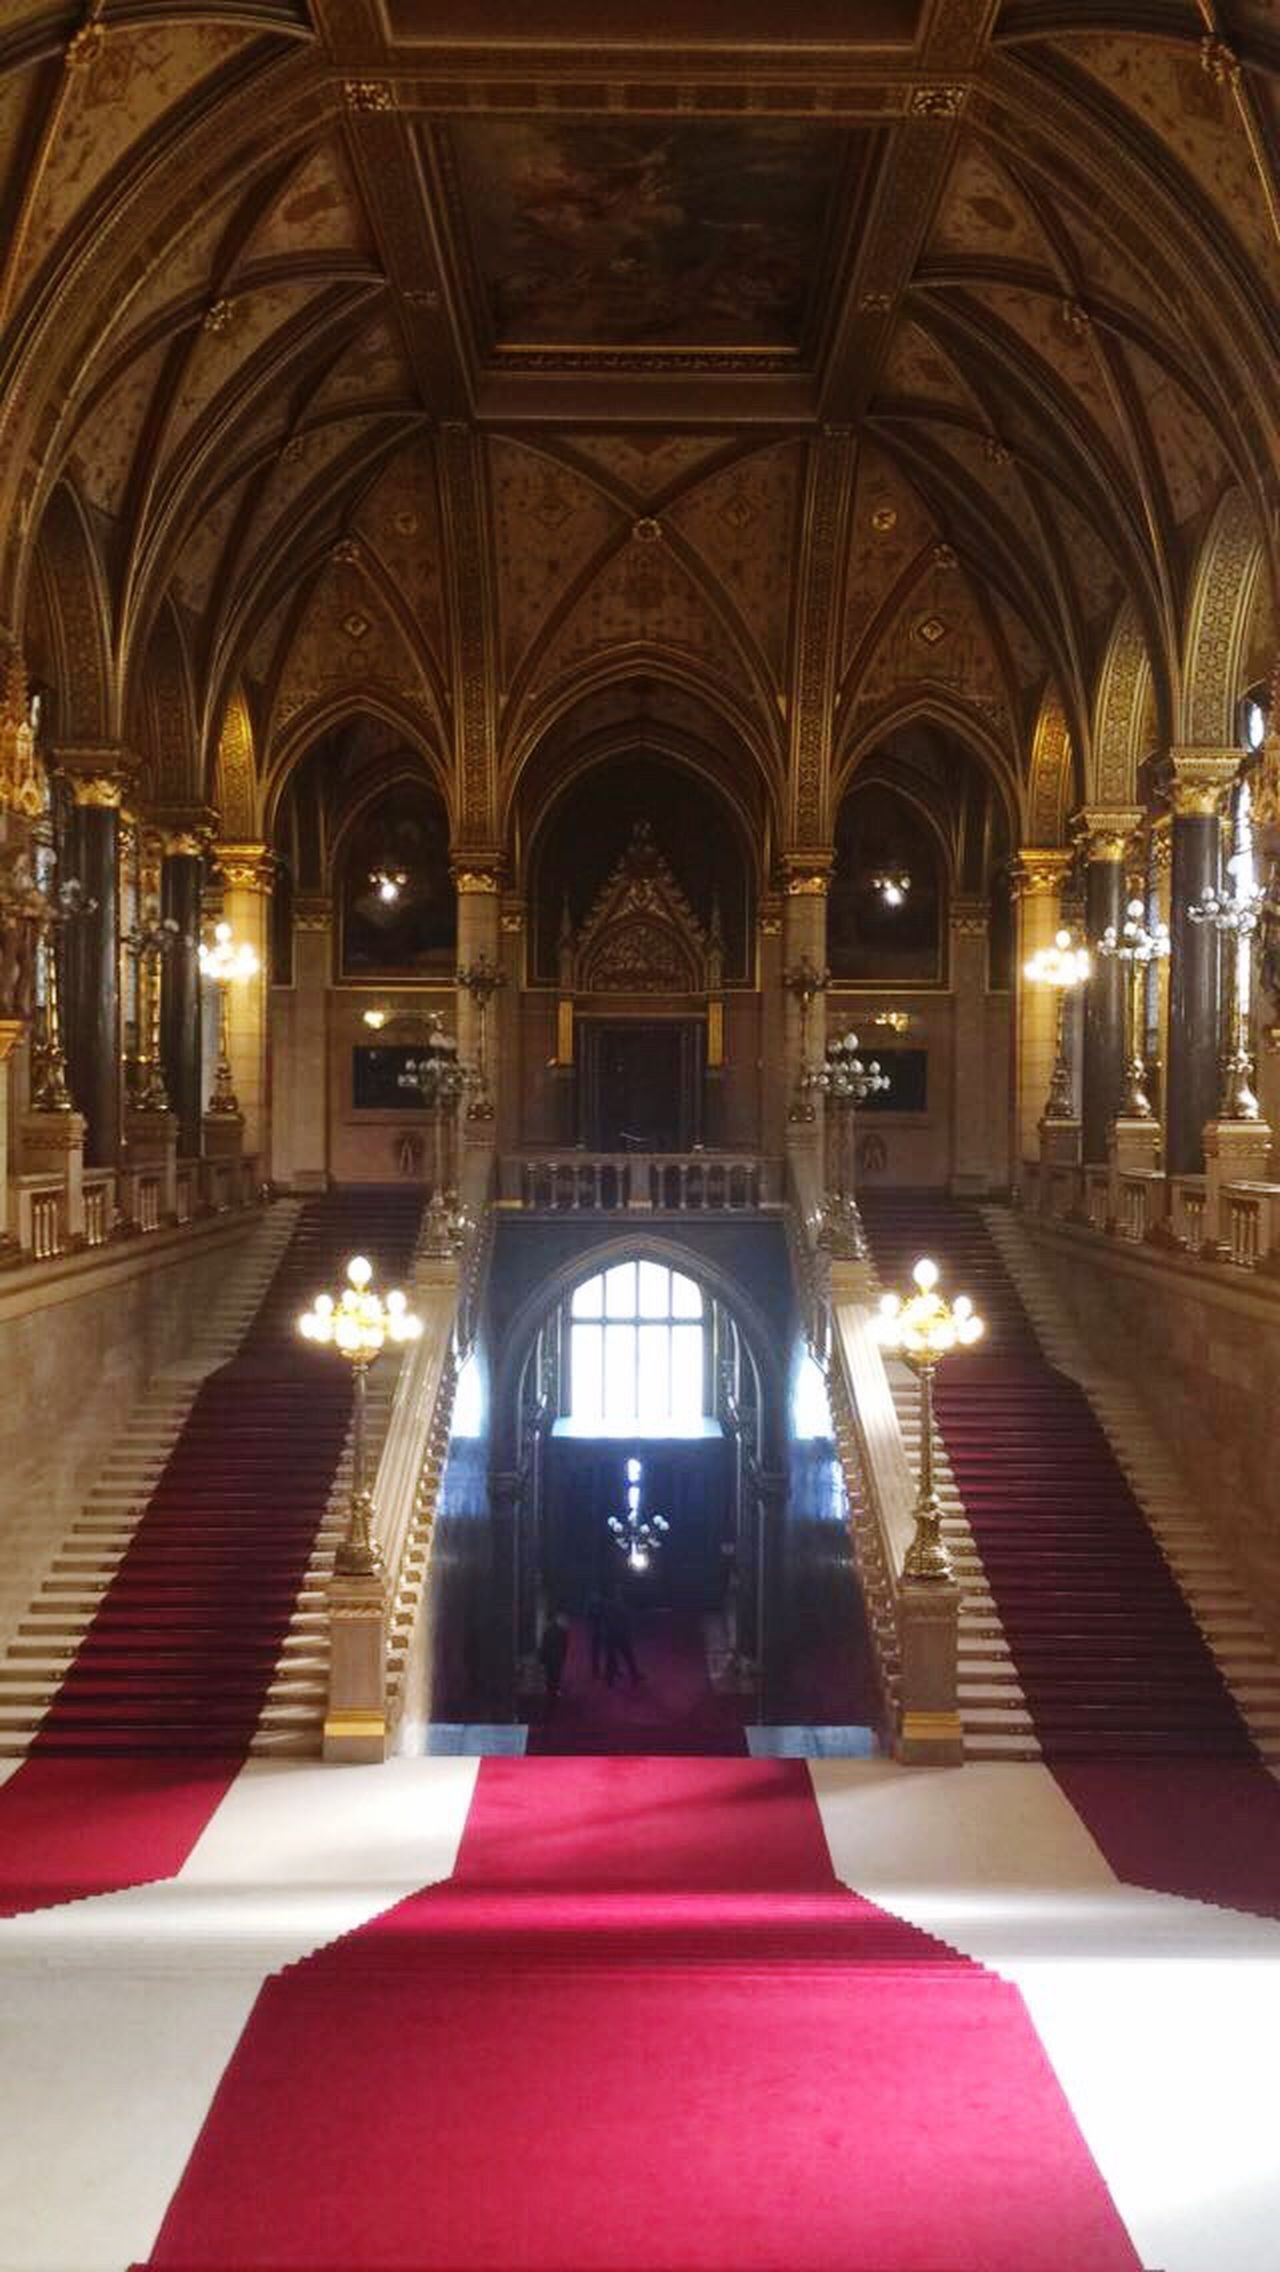 Arch Indoors  Architecture Built Structure Place Of Worship Day Travel Destinations No People Parlament Parlament Of Hungary Parlament Budapest Budapeste Hungary Hungria Gold Zoo Beautiful